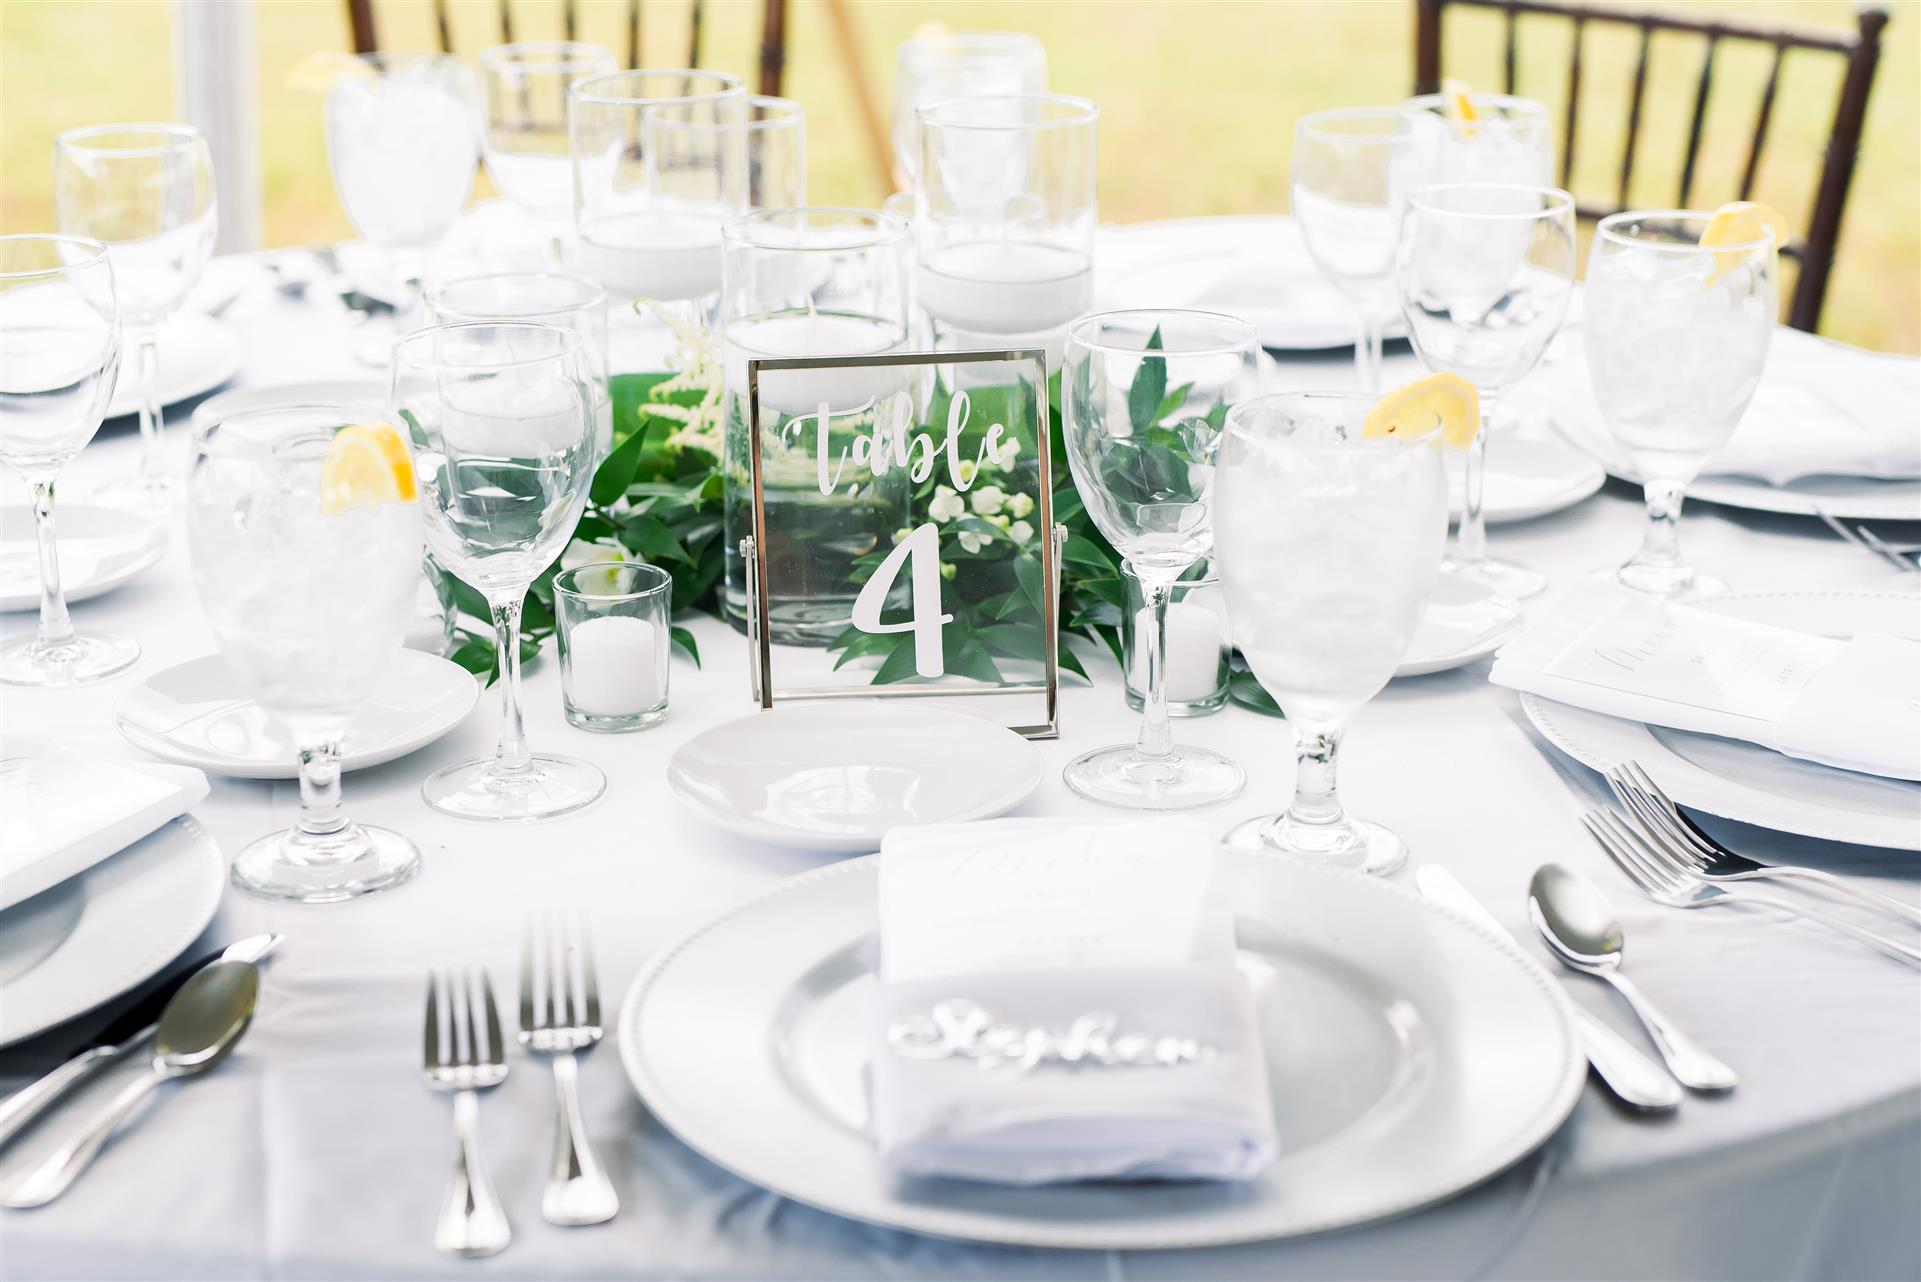 place settings on table for event